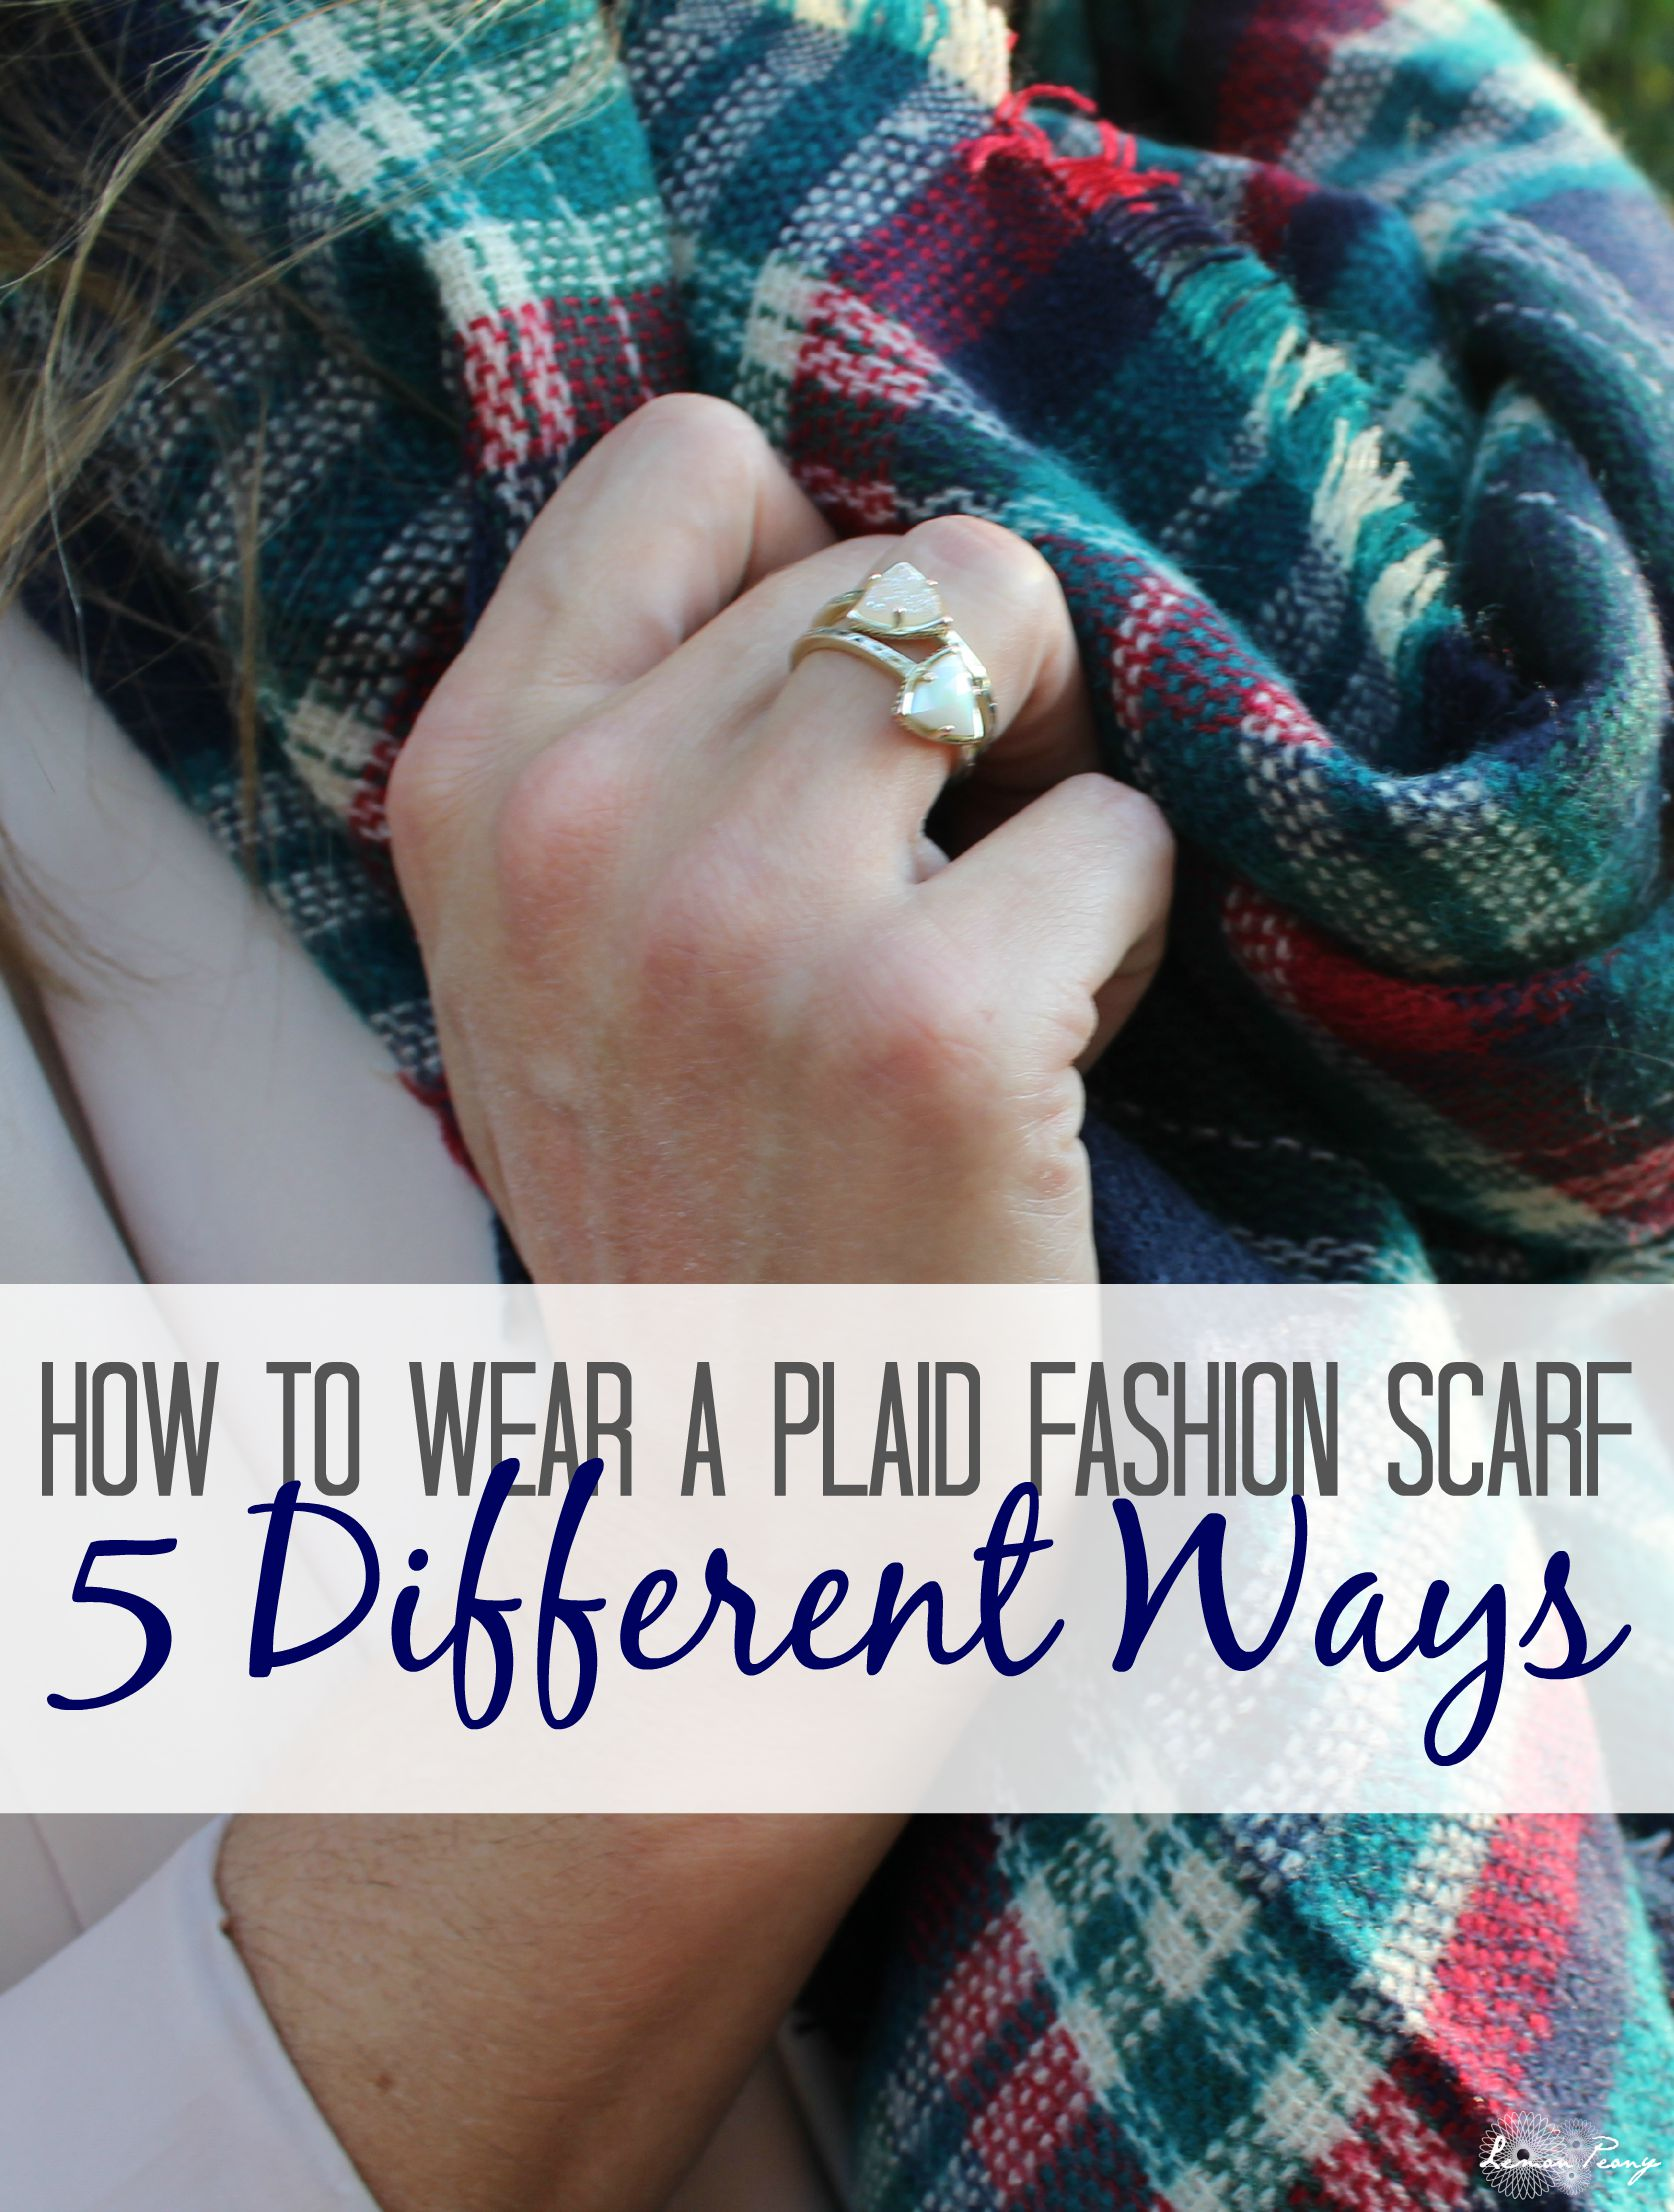 How to Wear a Plaid Fashion Scarf 5 Different Ways! Everyday Style Trends for Fall and Winter!